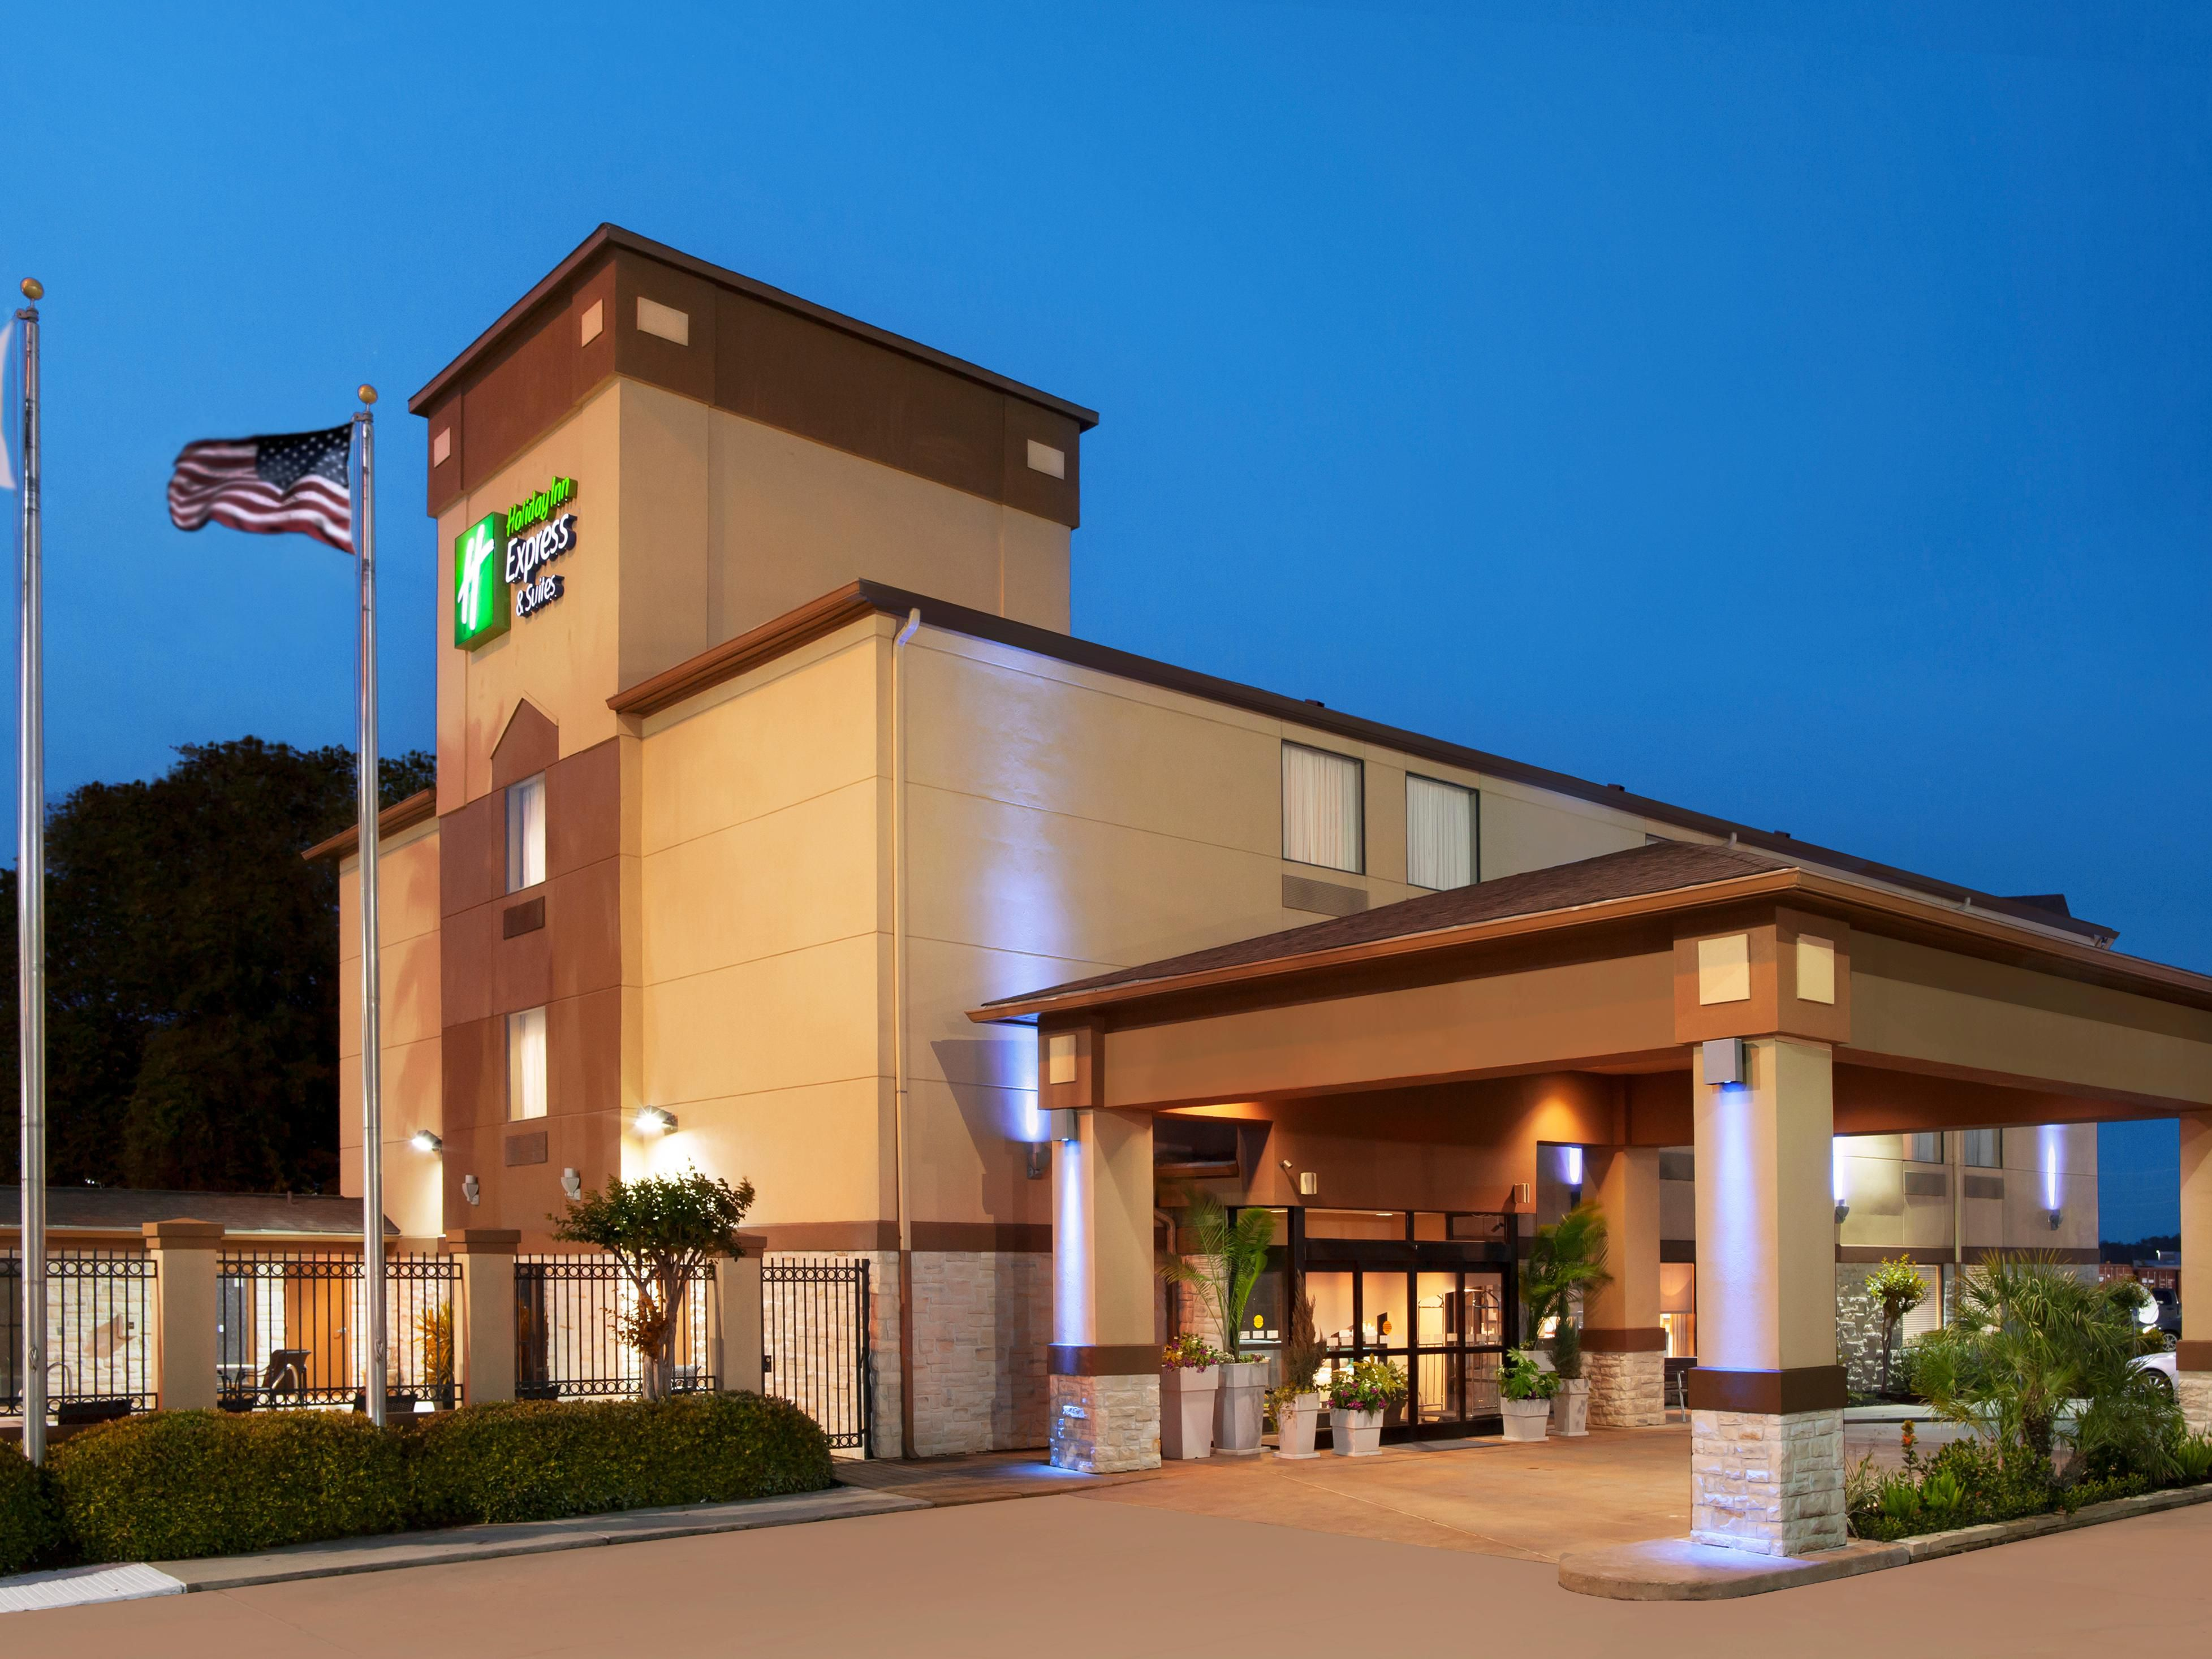 Holiday Inn & Suites Welcomes you Home after a long day